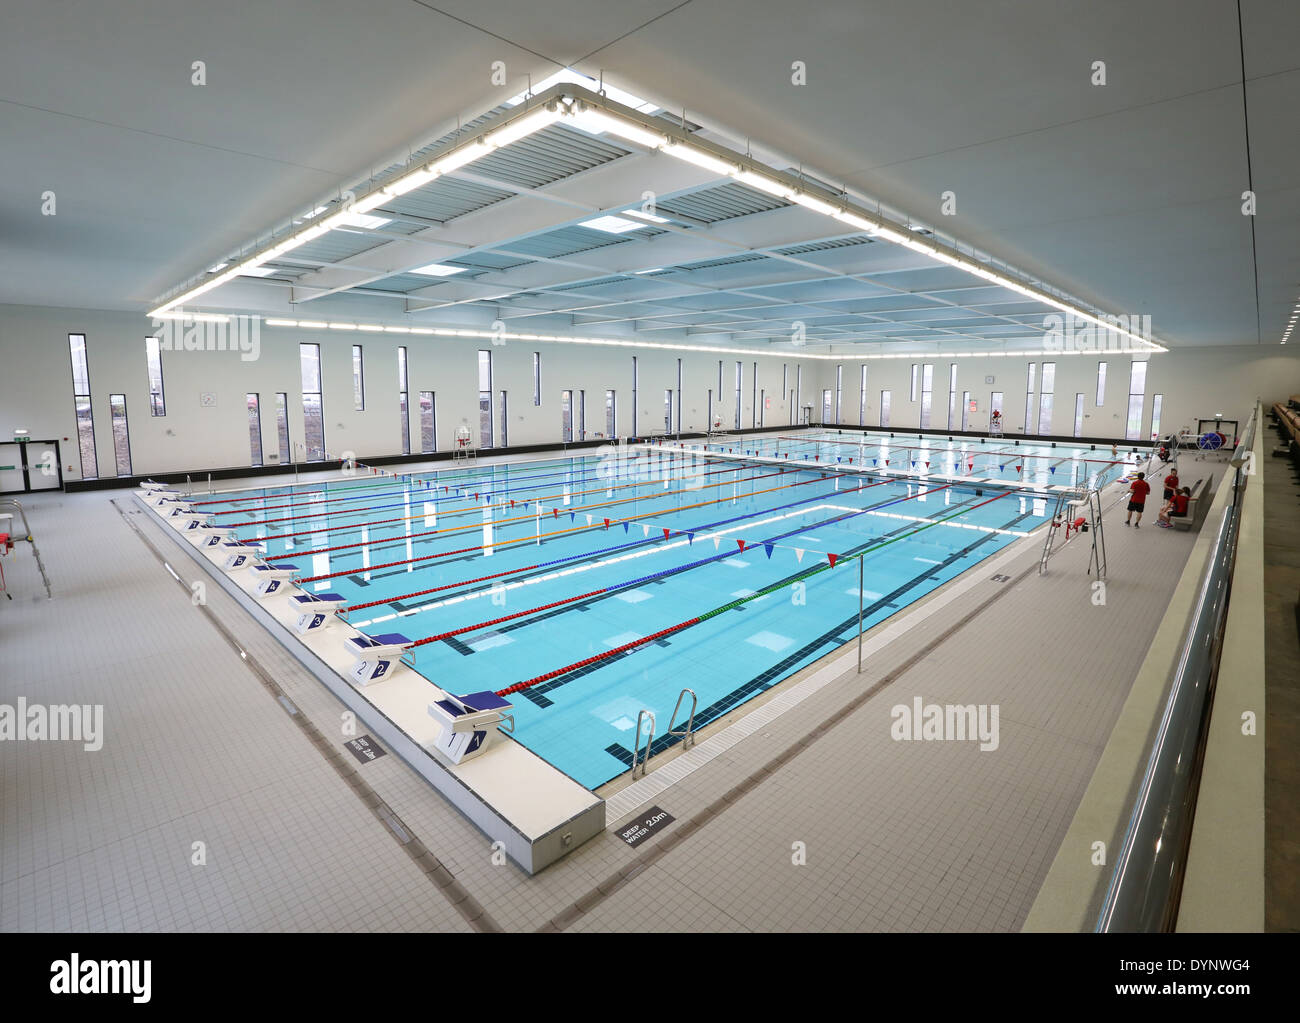 The 50 Metre Swimming Pool At Aberdeen Aquatic Centre At Aberdeen Stock Photo Royalty Free